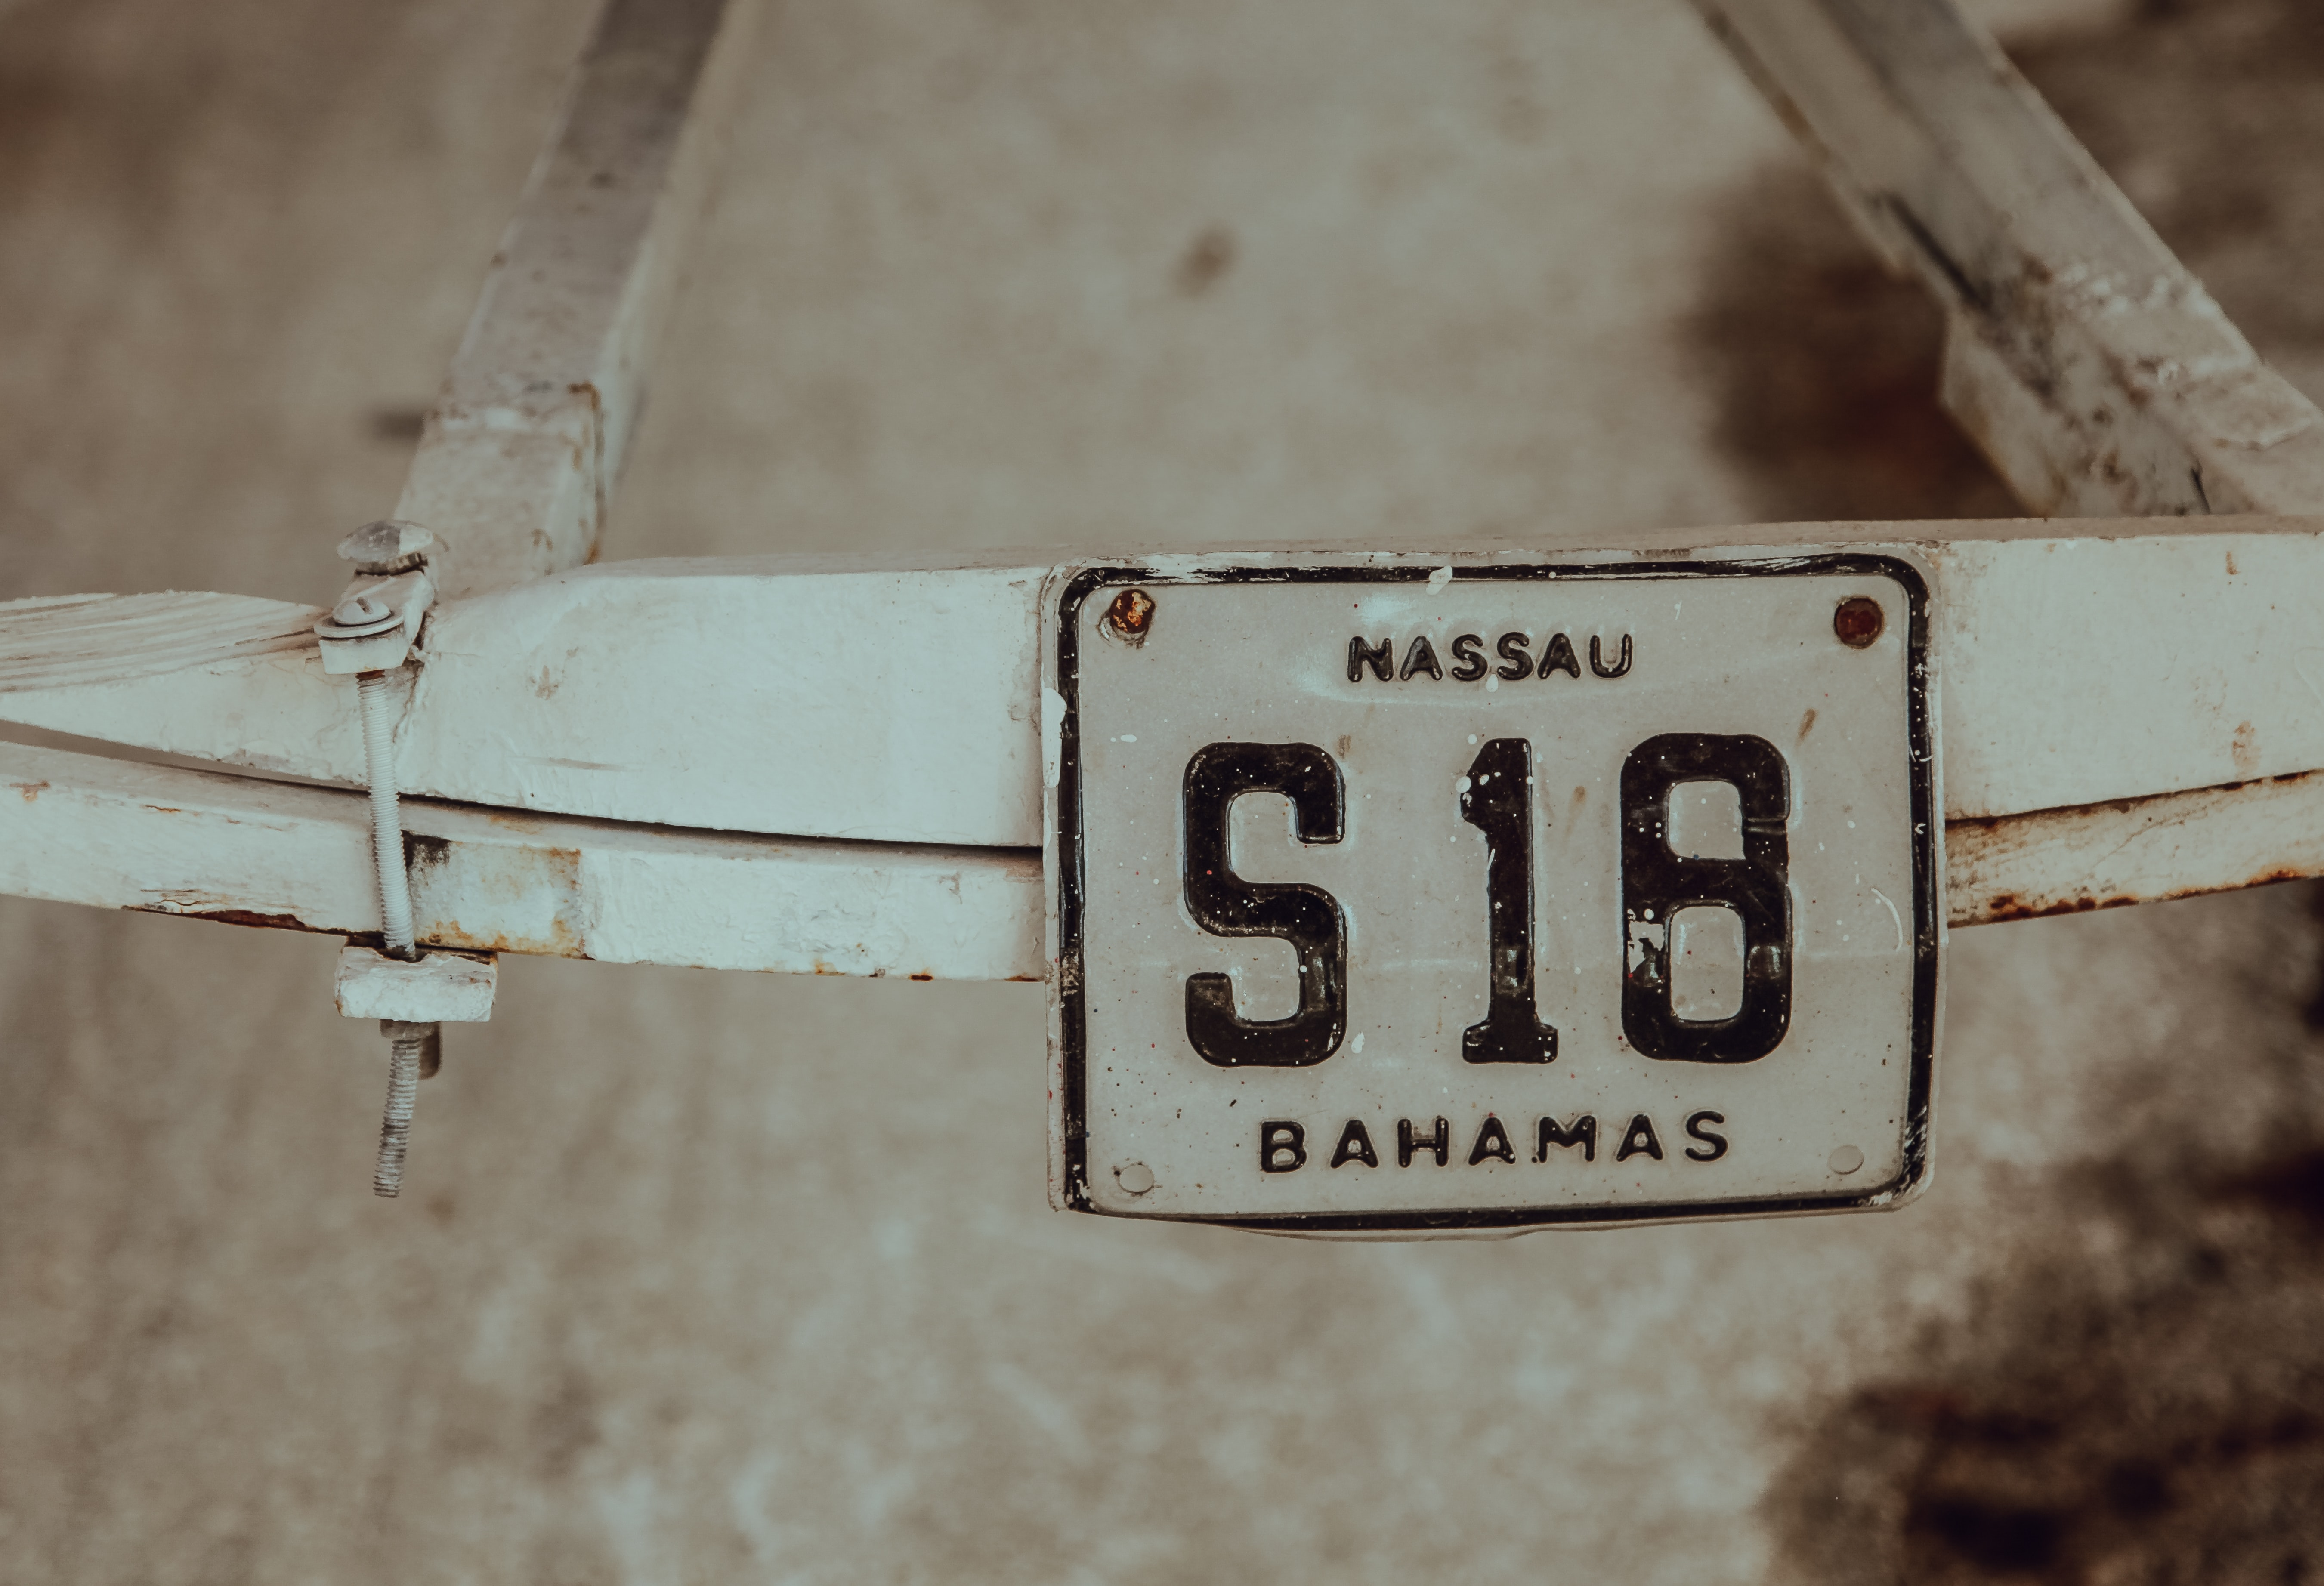 shallow focus photography of white Massau S18 Bahamas license plate mounted on white steel frame